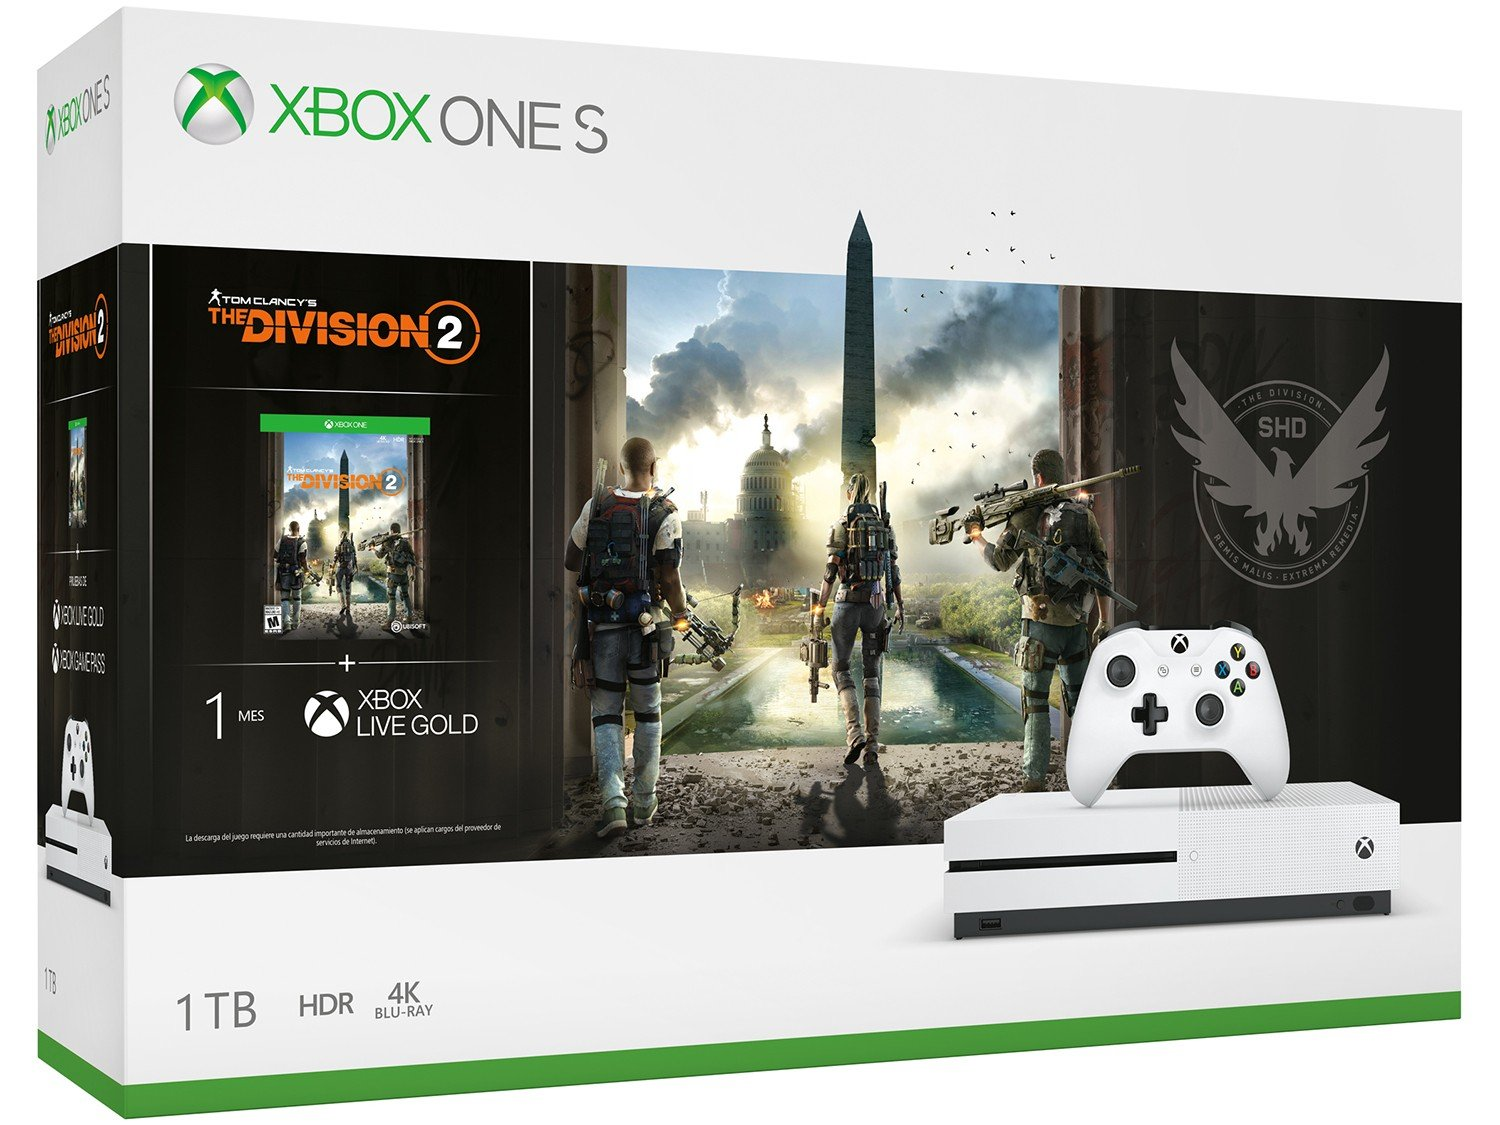 Console Xbox One S 1TB + Jogo The Division 2 (Download via Xbox Live) - 12